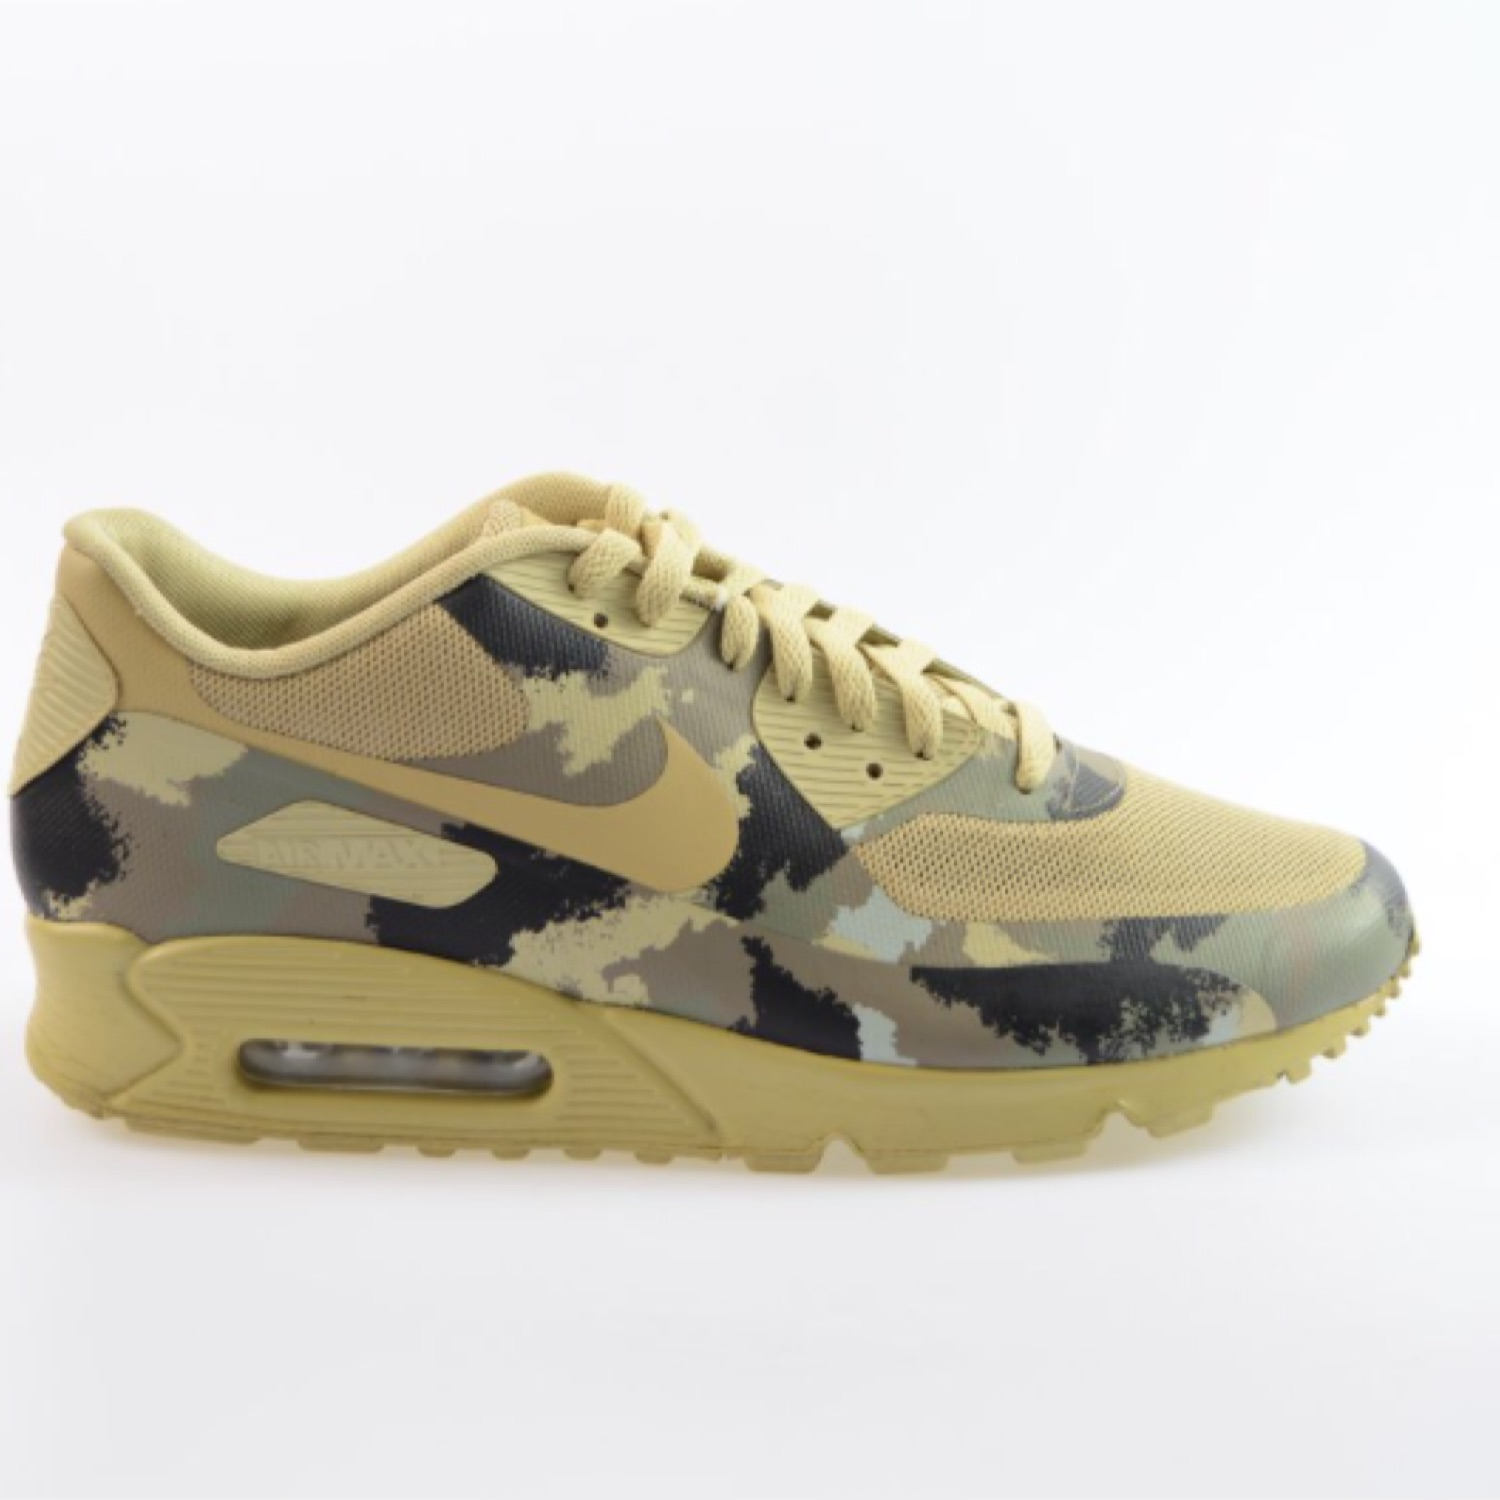 low priced 006dc 3f0ee Nike Air Max 90 Hyp Sp